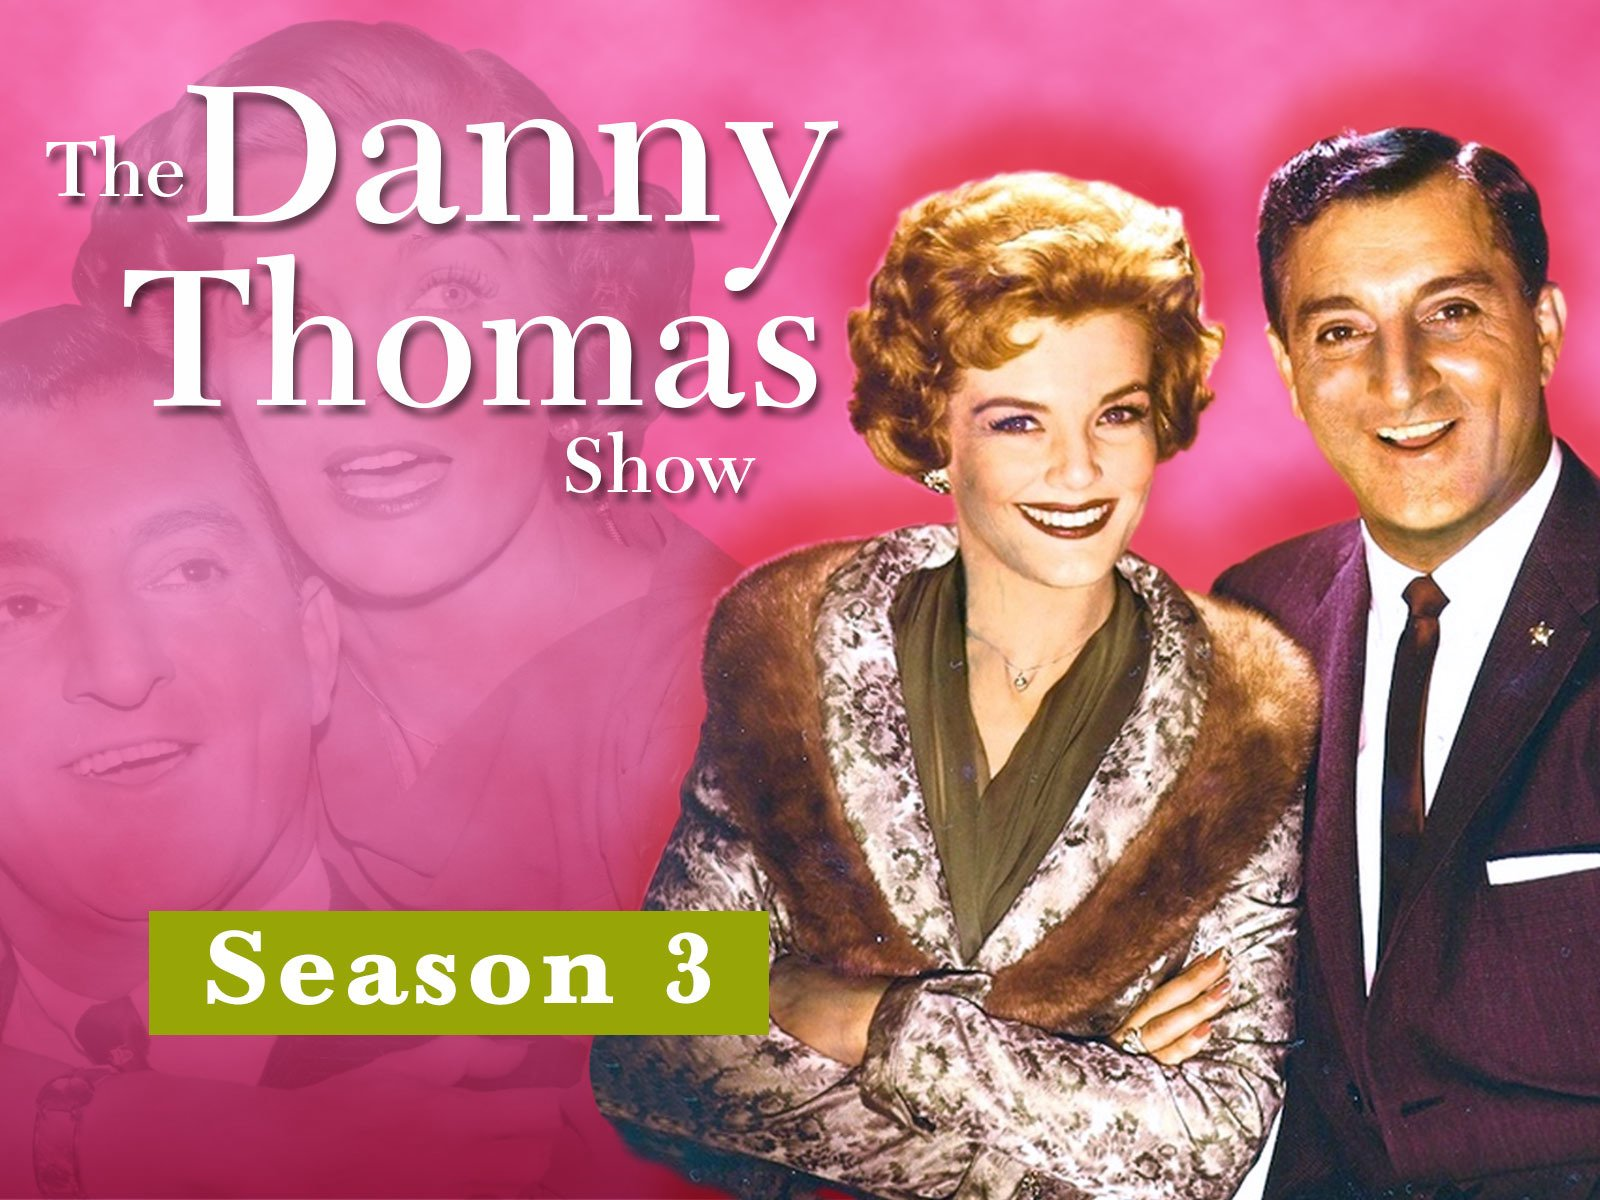 The Danny Thomas Show - Season 3